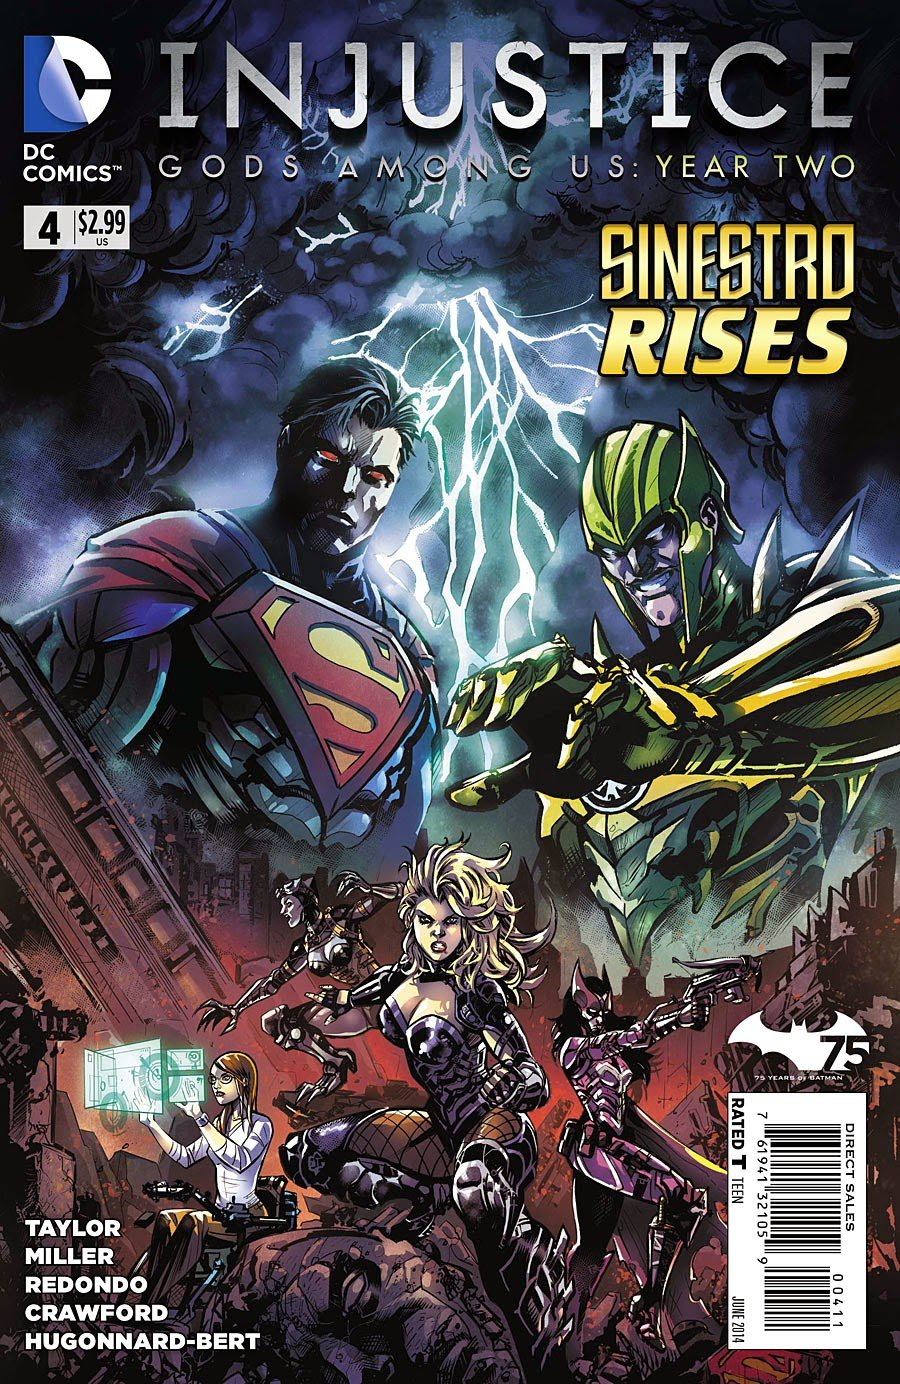 Injustice - Gods Among Us: Year Two 004 (June 2014)